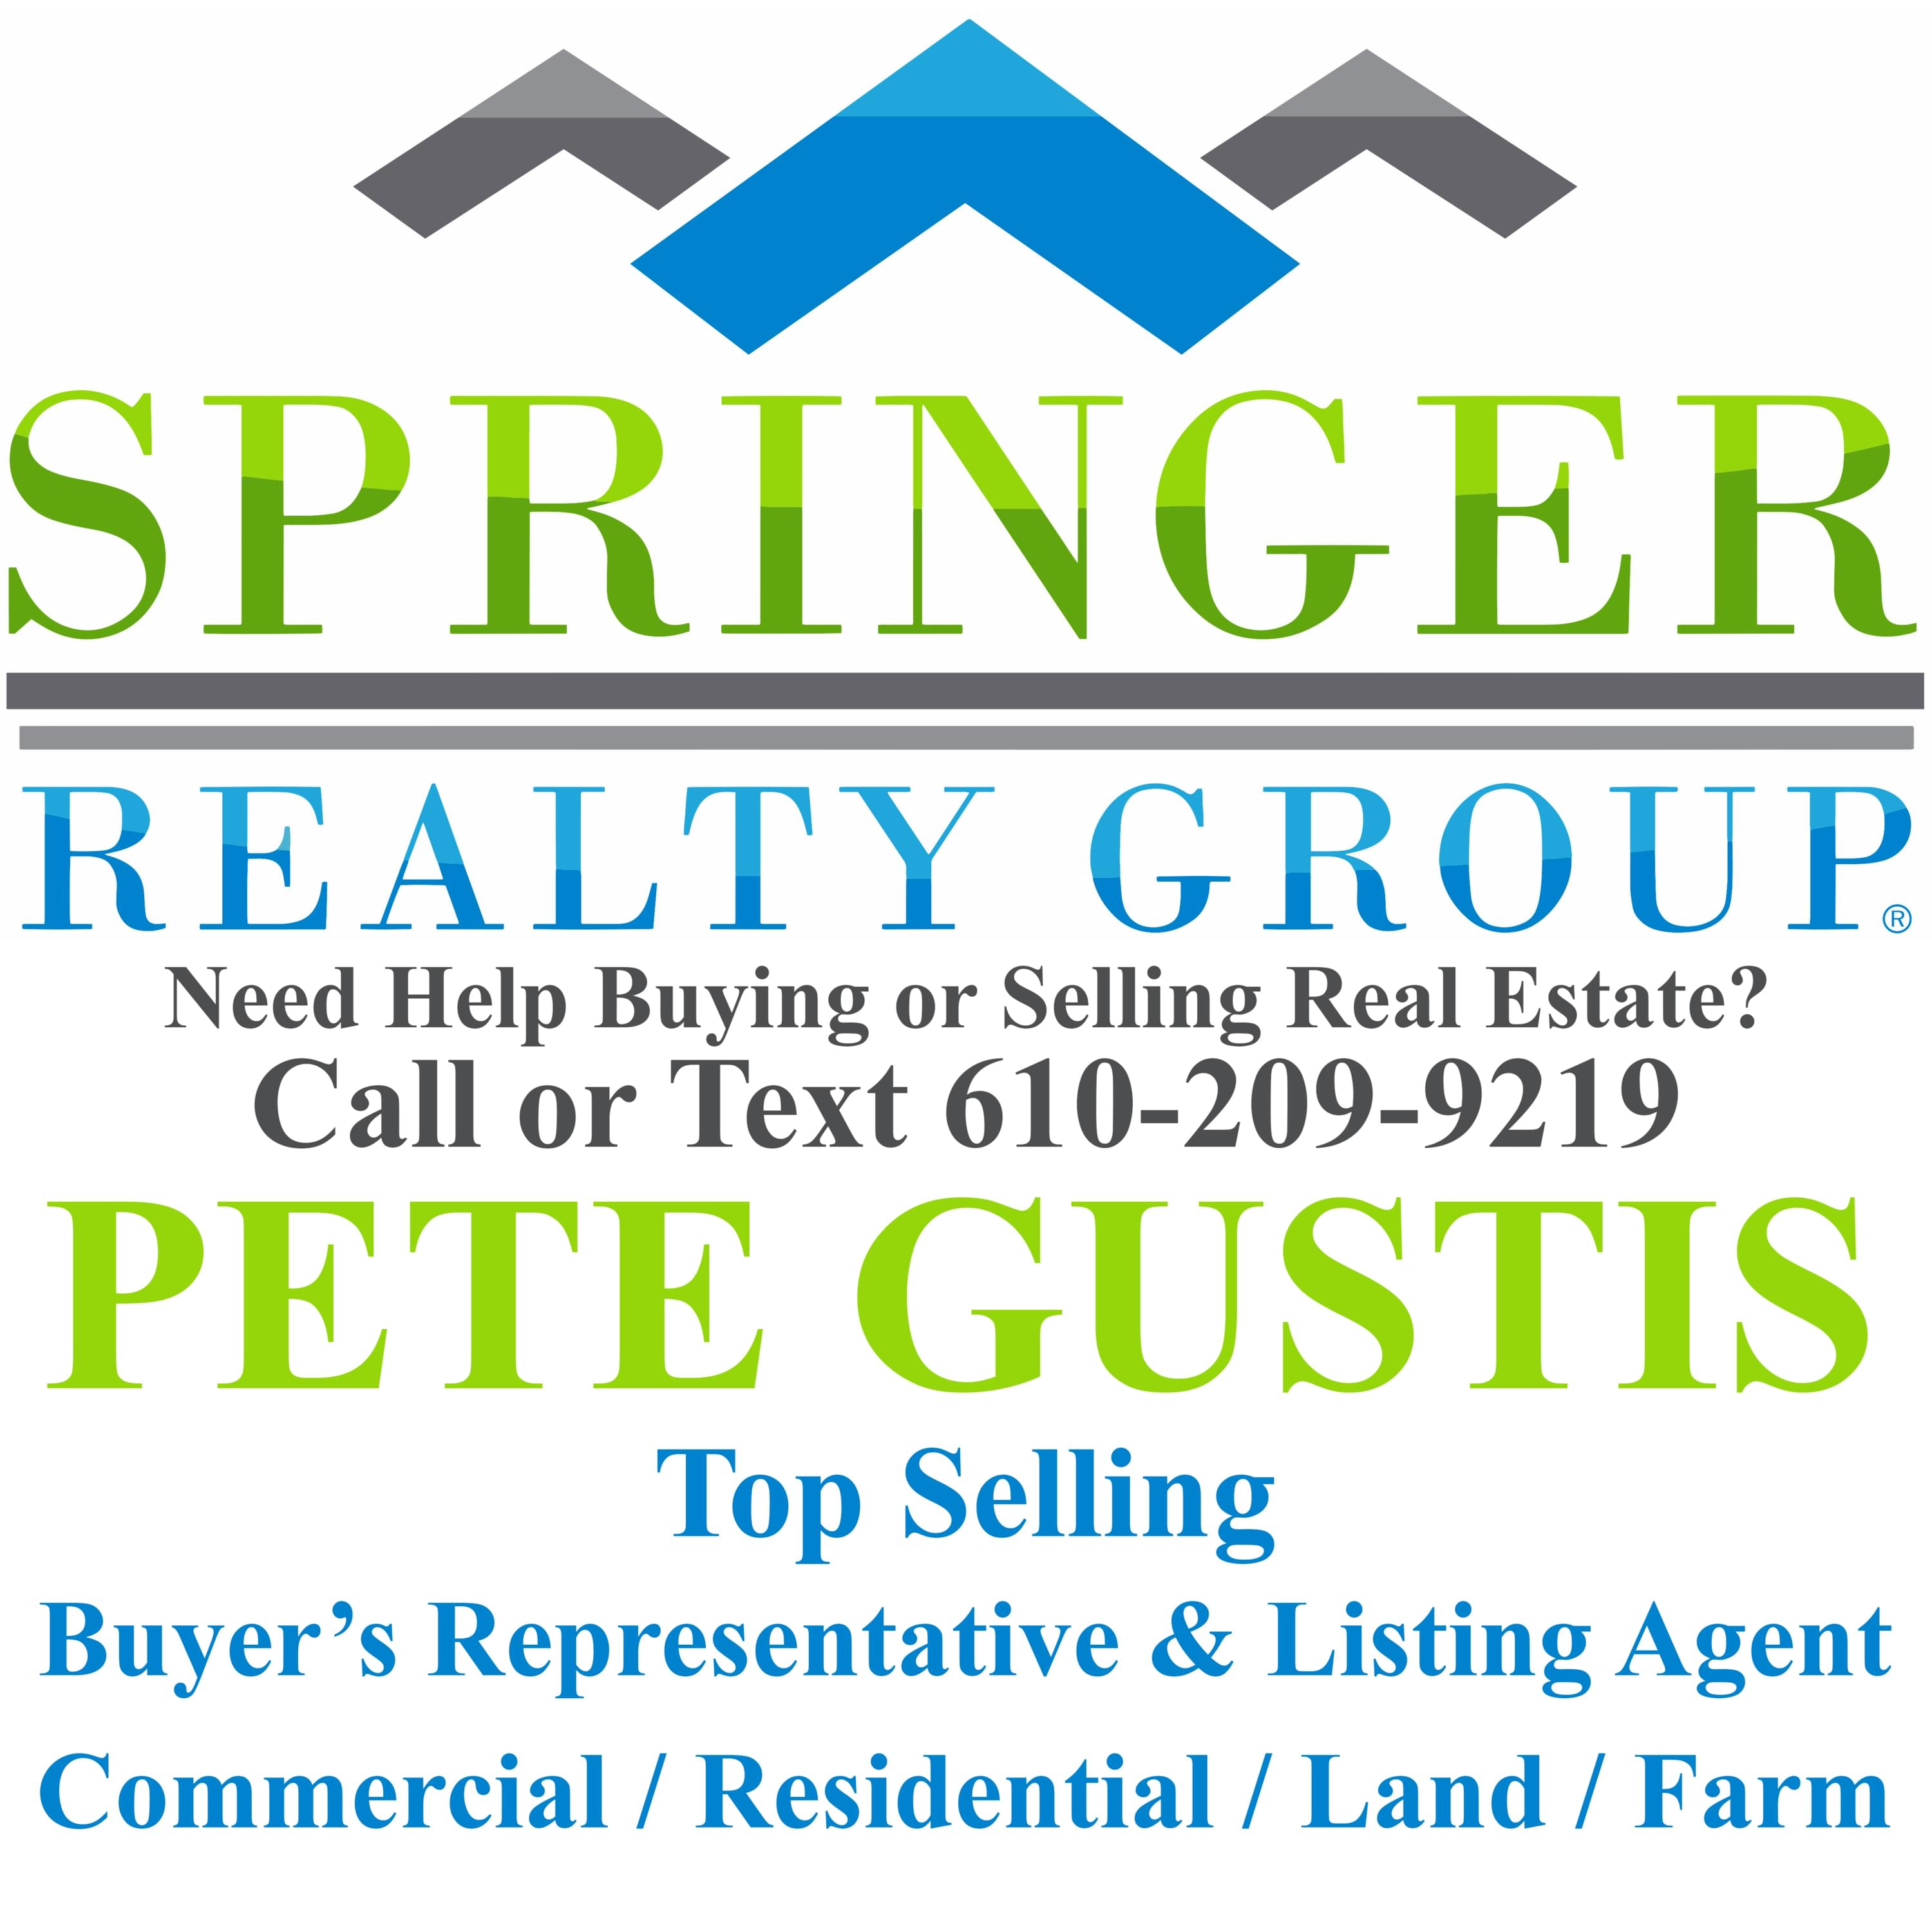 Top Selling Realtor in Pennsylvania